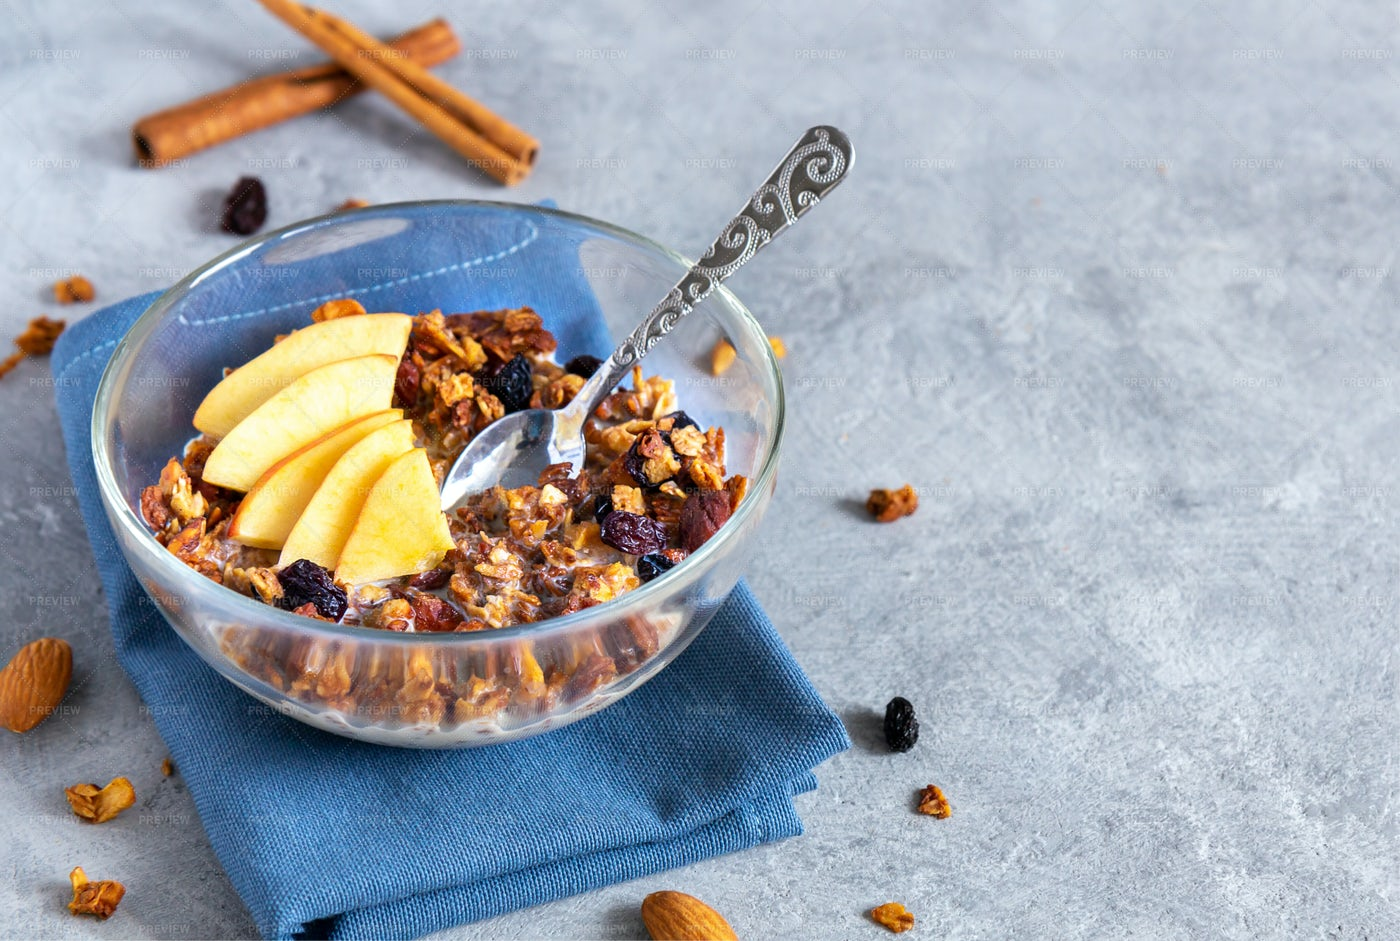 Oat Granola With Apples: Stock Photos